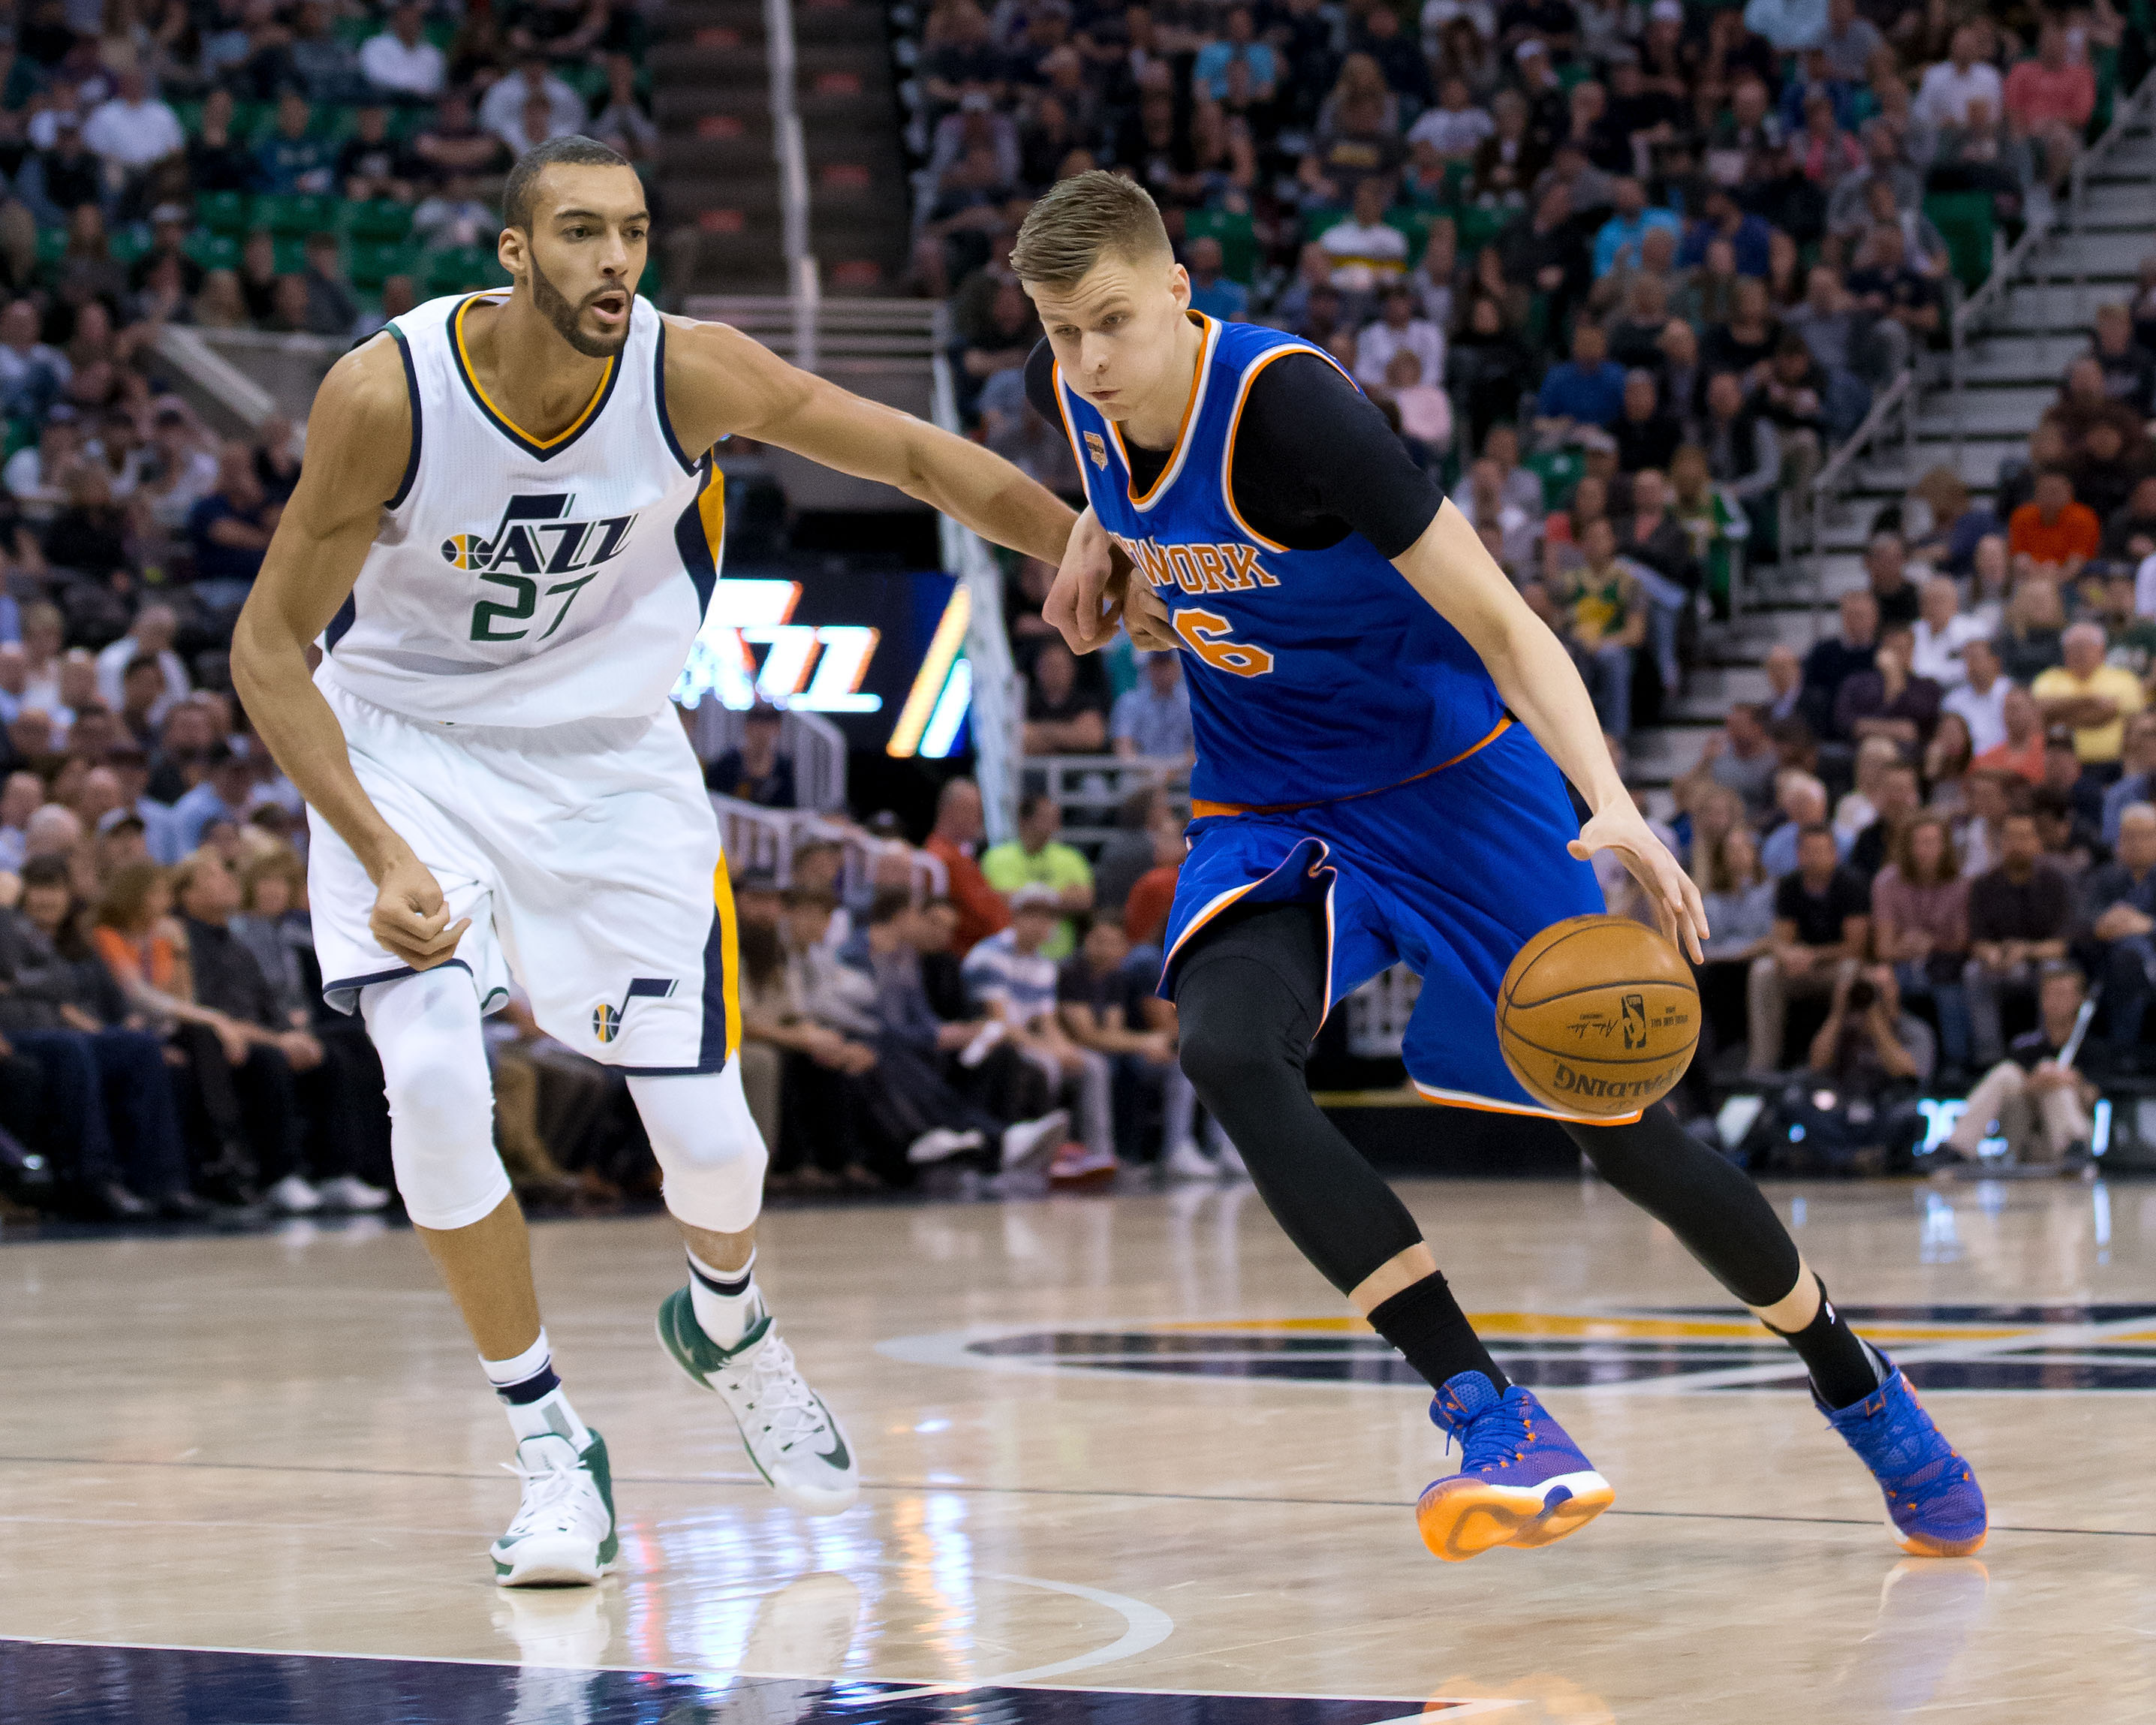 9965404-nba-new-york-knicks-at-utah-jazz